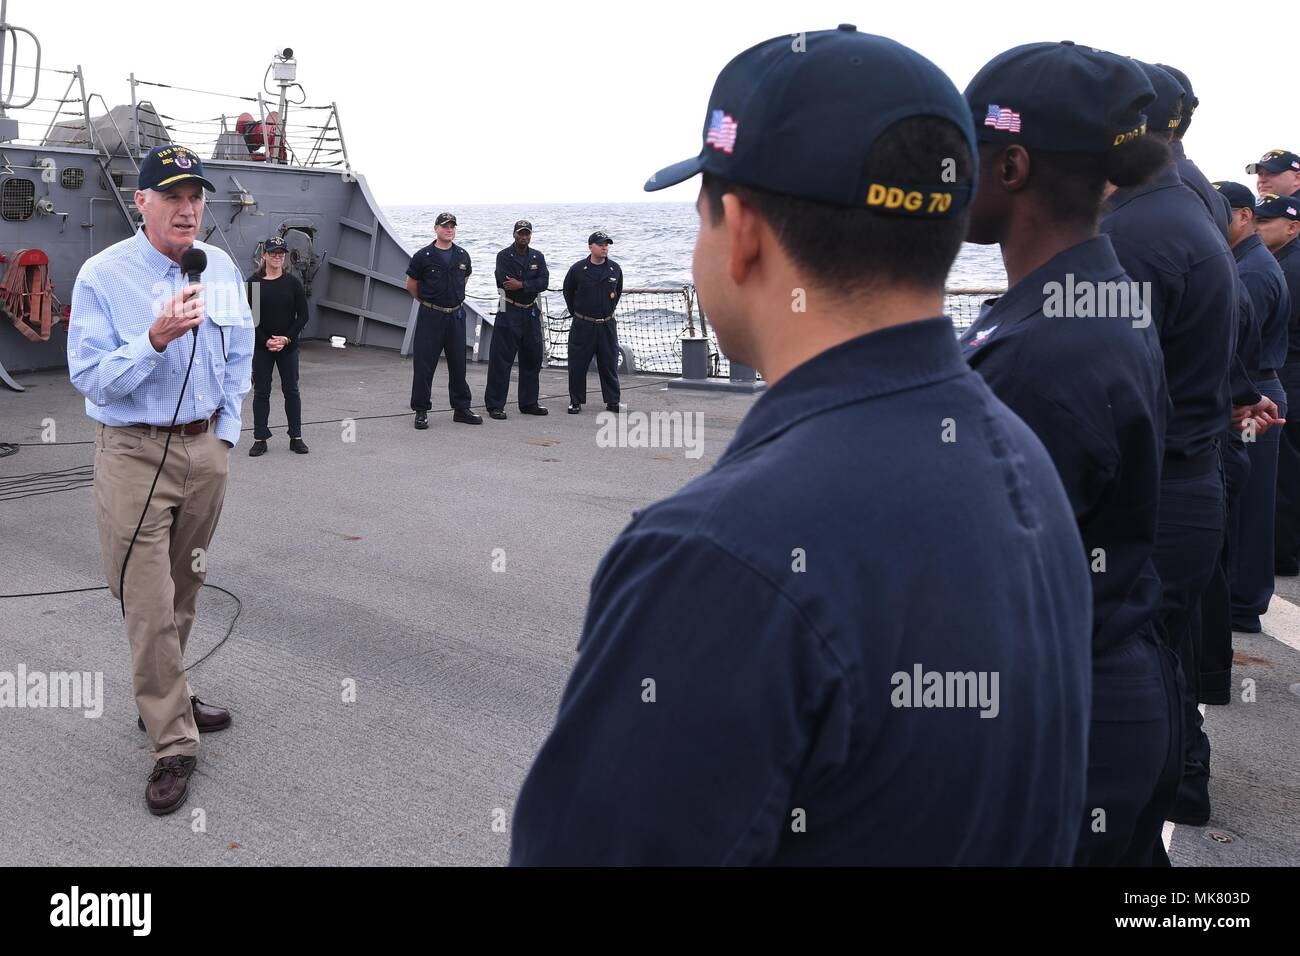 ARABIAN GULF (Nov. 23, 2017) Secretary of the Navy Richard V. Spencer addresses crewmembers of the Arleigh Burke-class guided-missile destroyer USS Hopper (DDG 70) during an all-hands call on the ship's flight deck on Thanksgiving Day. Hopper is deployed to the U.S. 5th Fleet area of operations in support of maritime security operations to reassure allies and partners and preserve the freedom of navigation and the free flow of commerce in the region. (U.S. Navy photo by Mass Communication Specialist 2nd Class Kristina Young/Released) - Stock Image